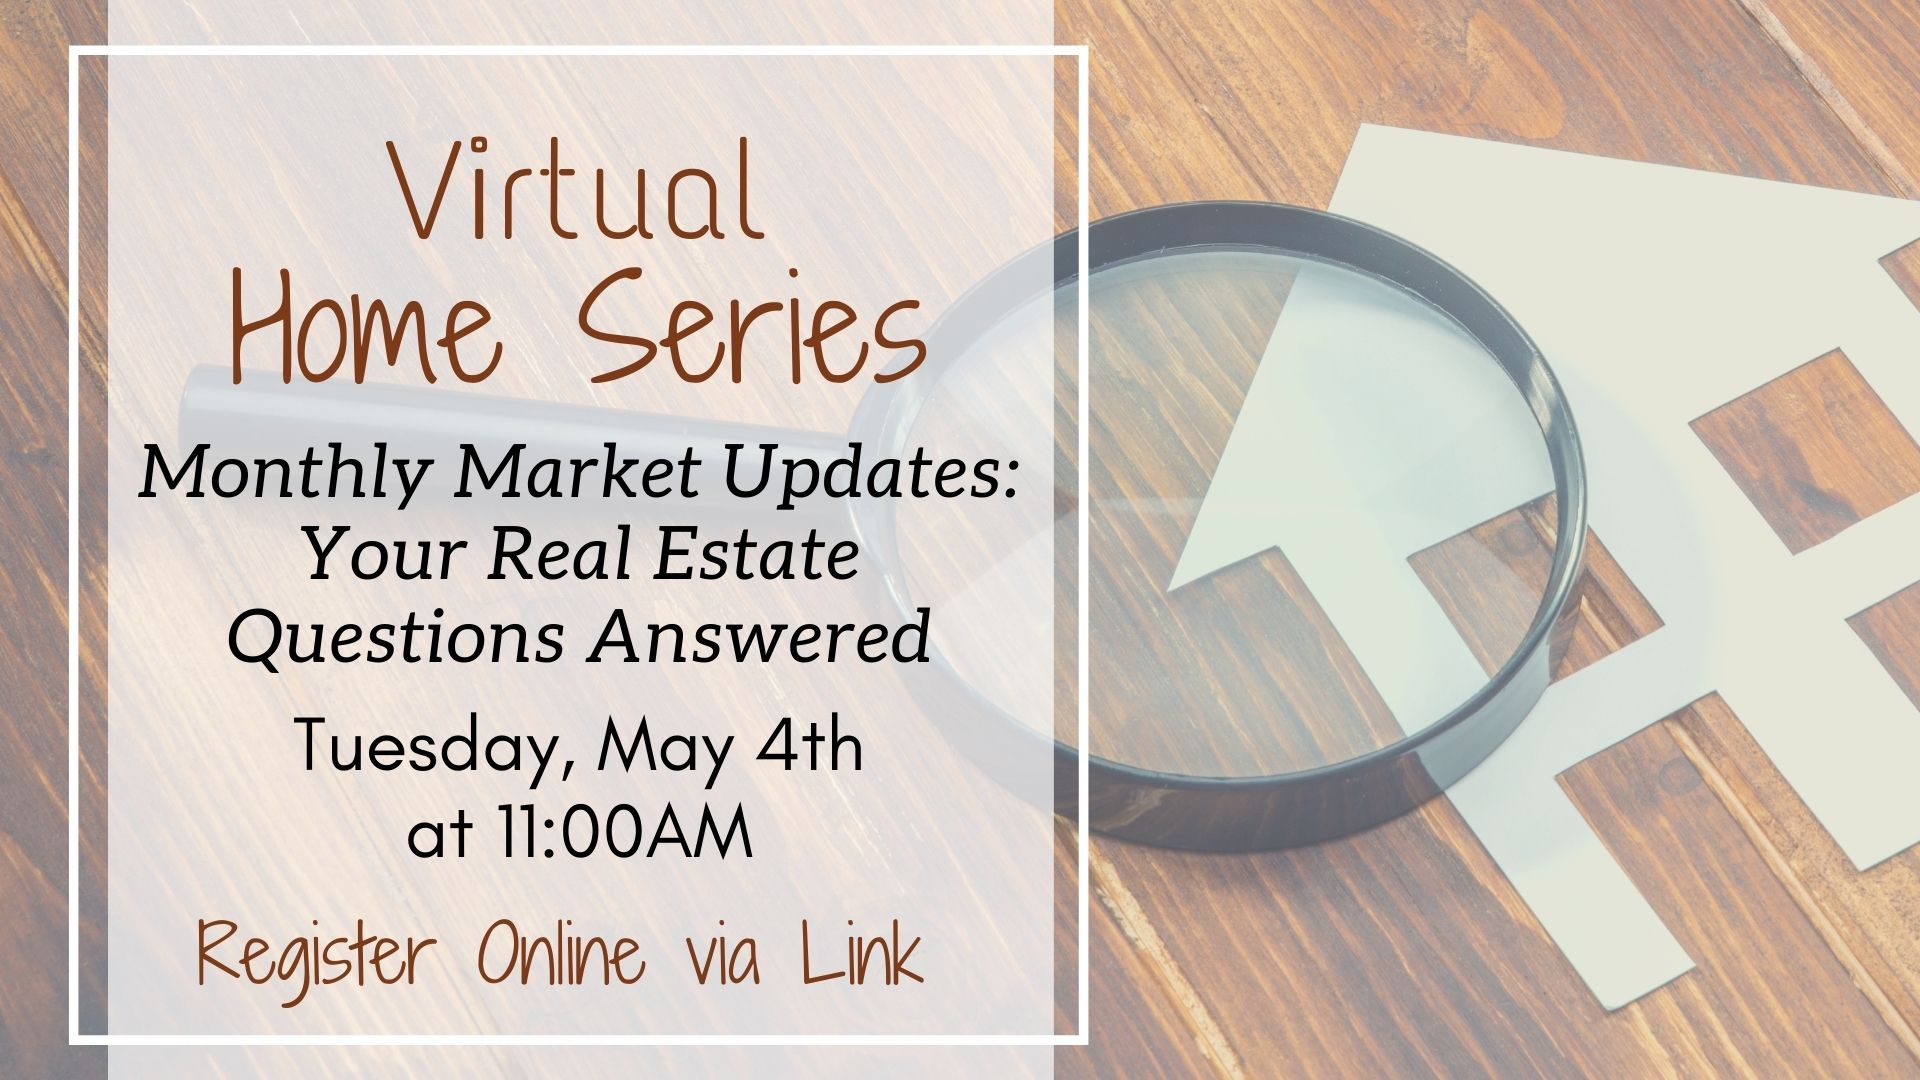 Home Series: Monthly Market Updates - Your Real Estate Questions Answered